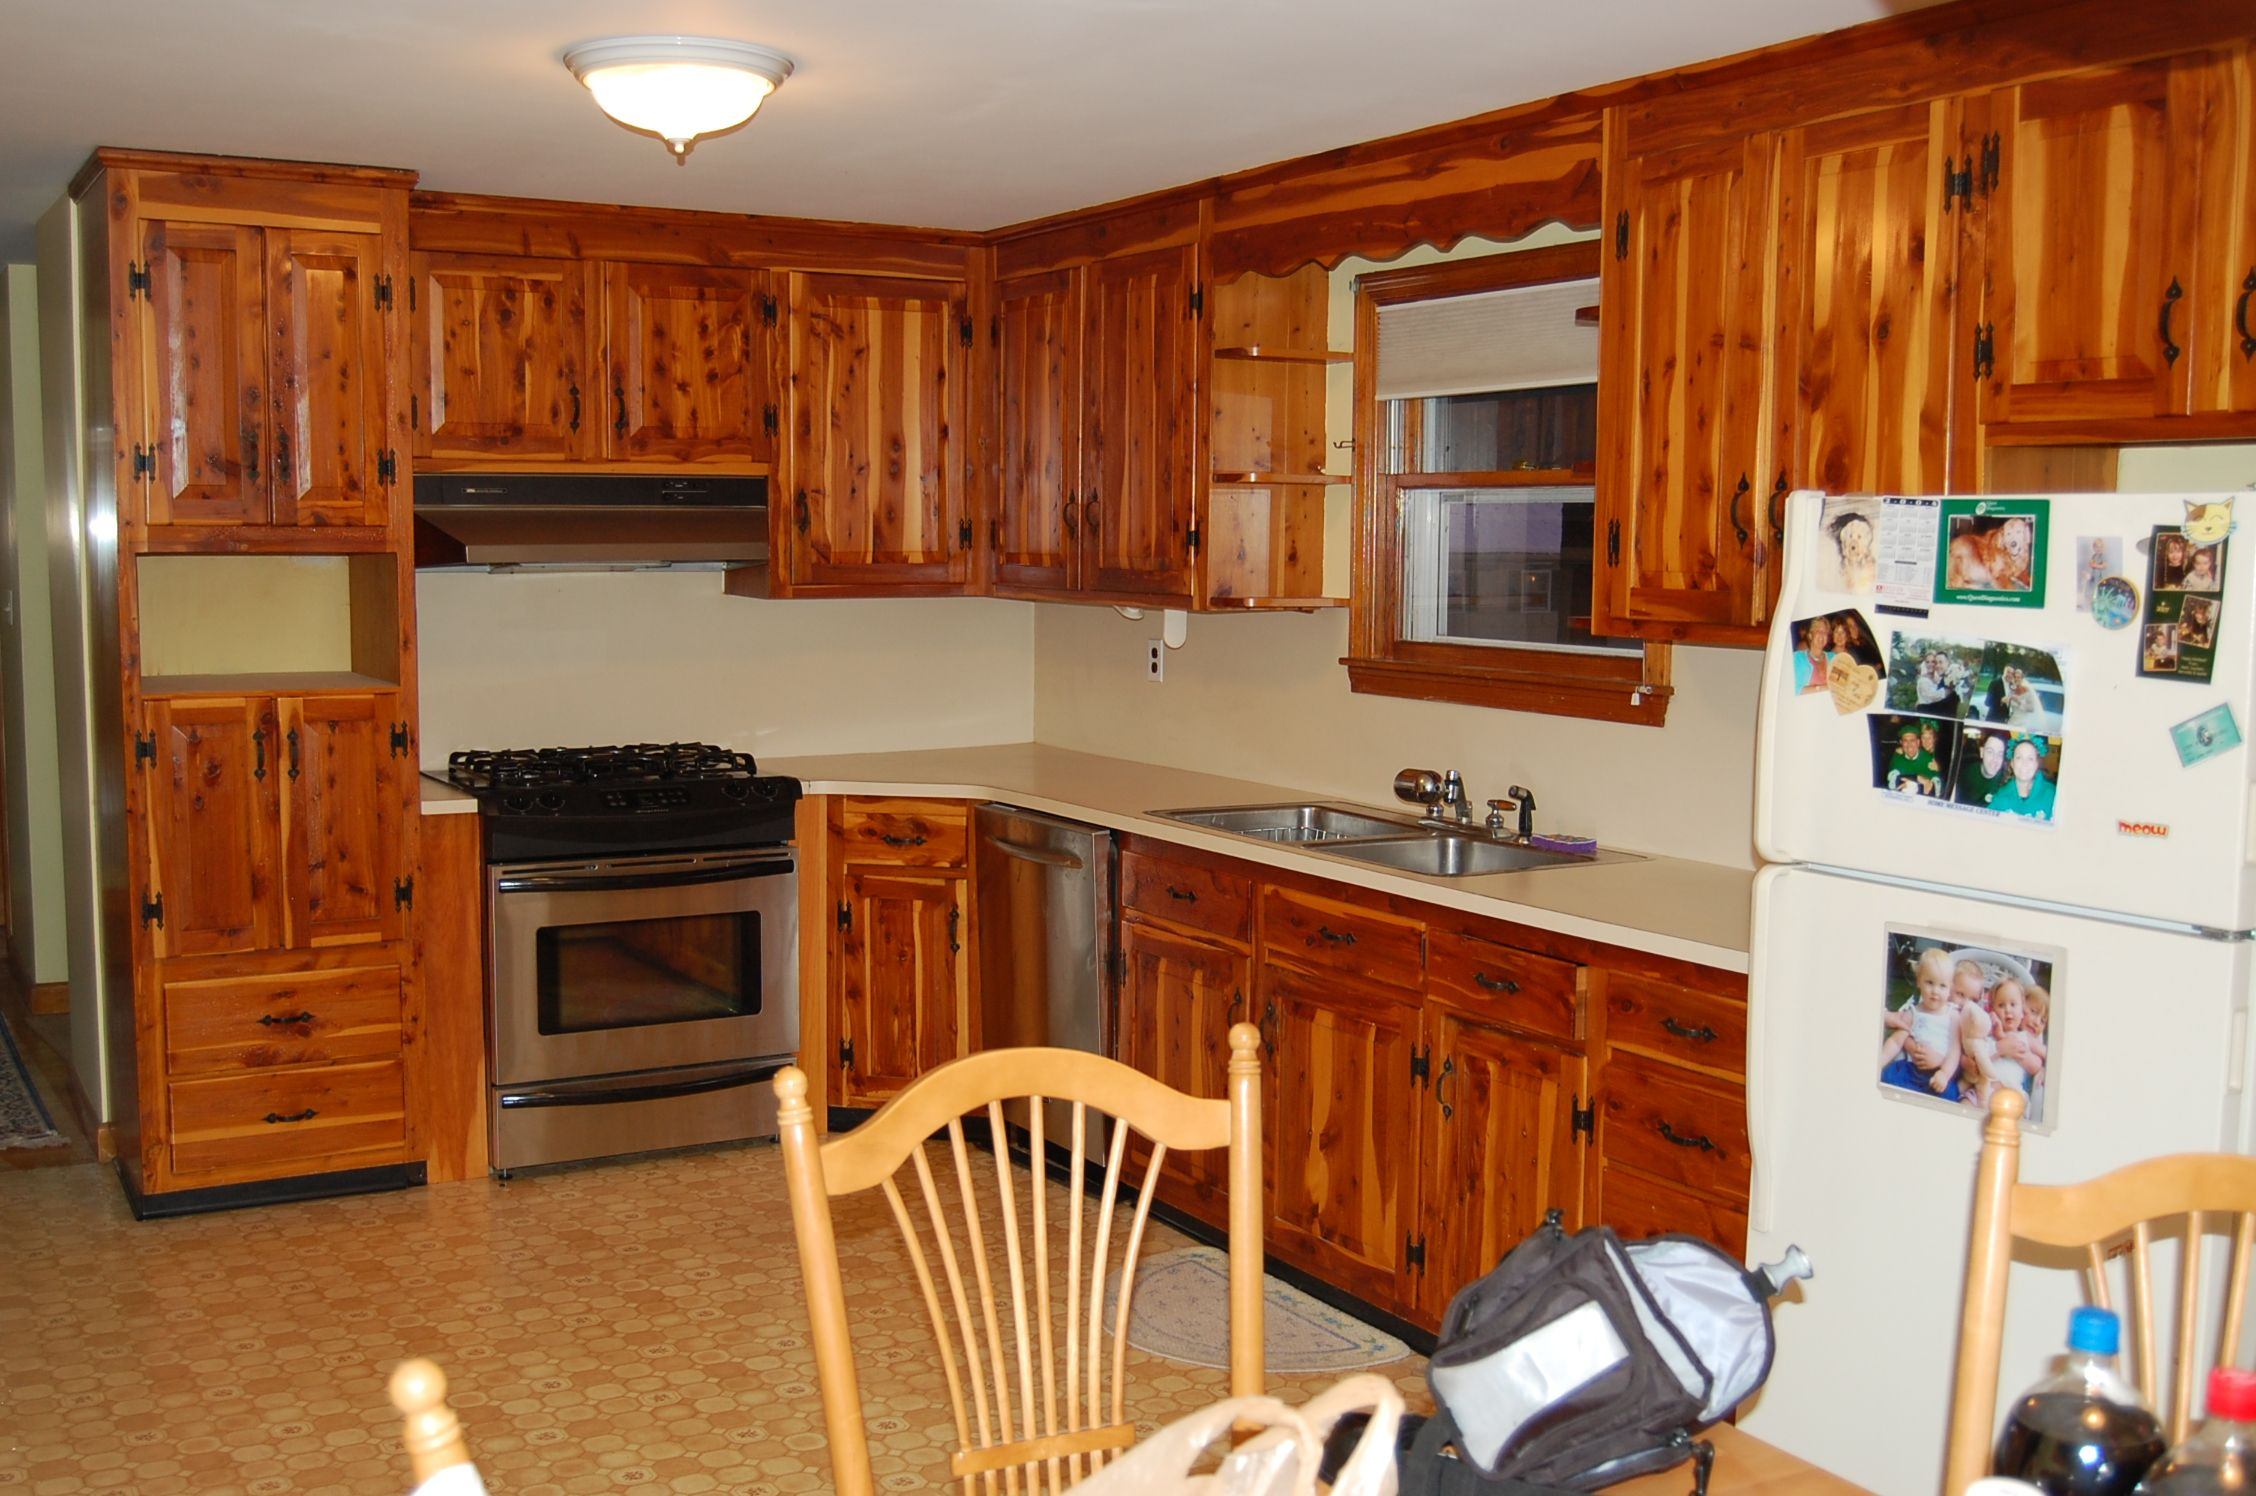 Kitchens · Description For Refacing Cabinet Doors Yourself Change The Look  Your Cabinets With These Diy Ideas